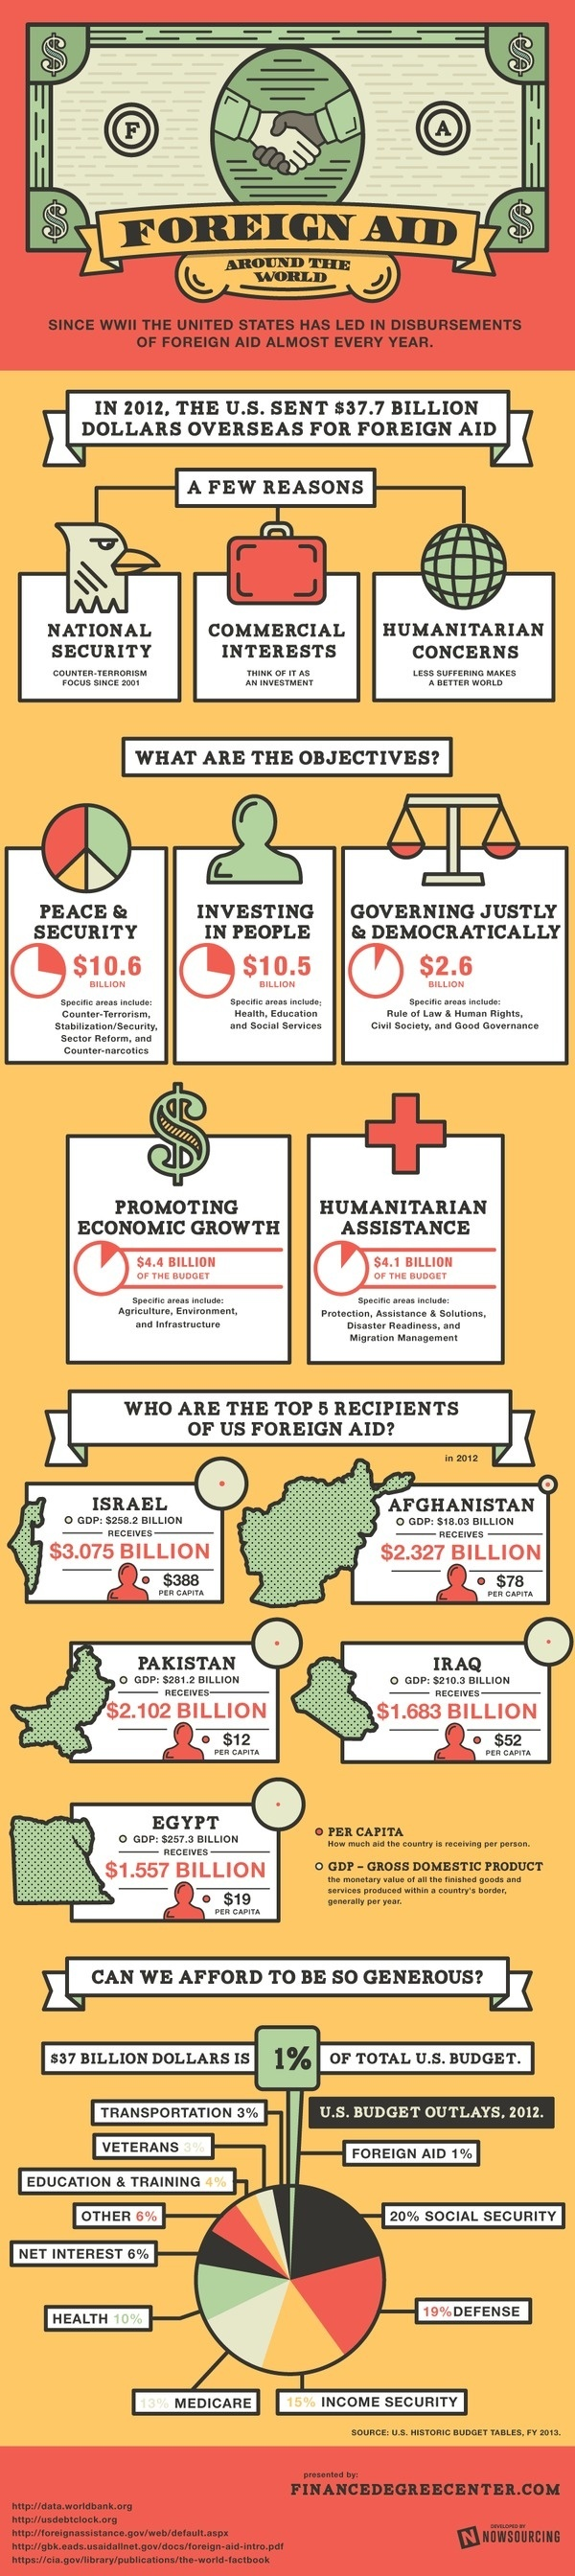 Foreign Aid Around the World #infographic